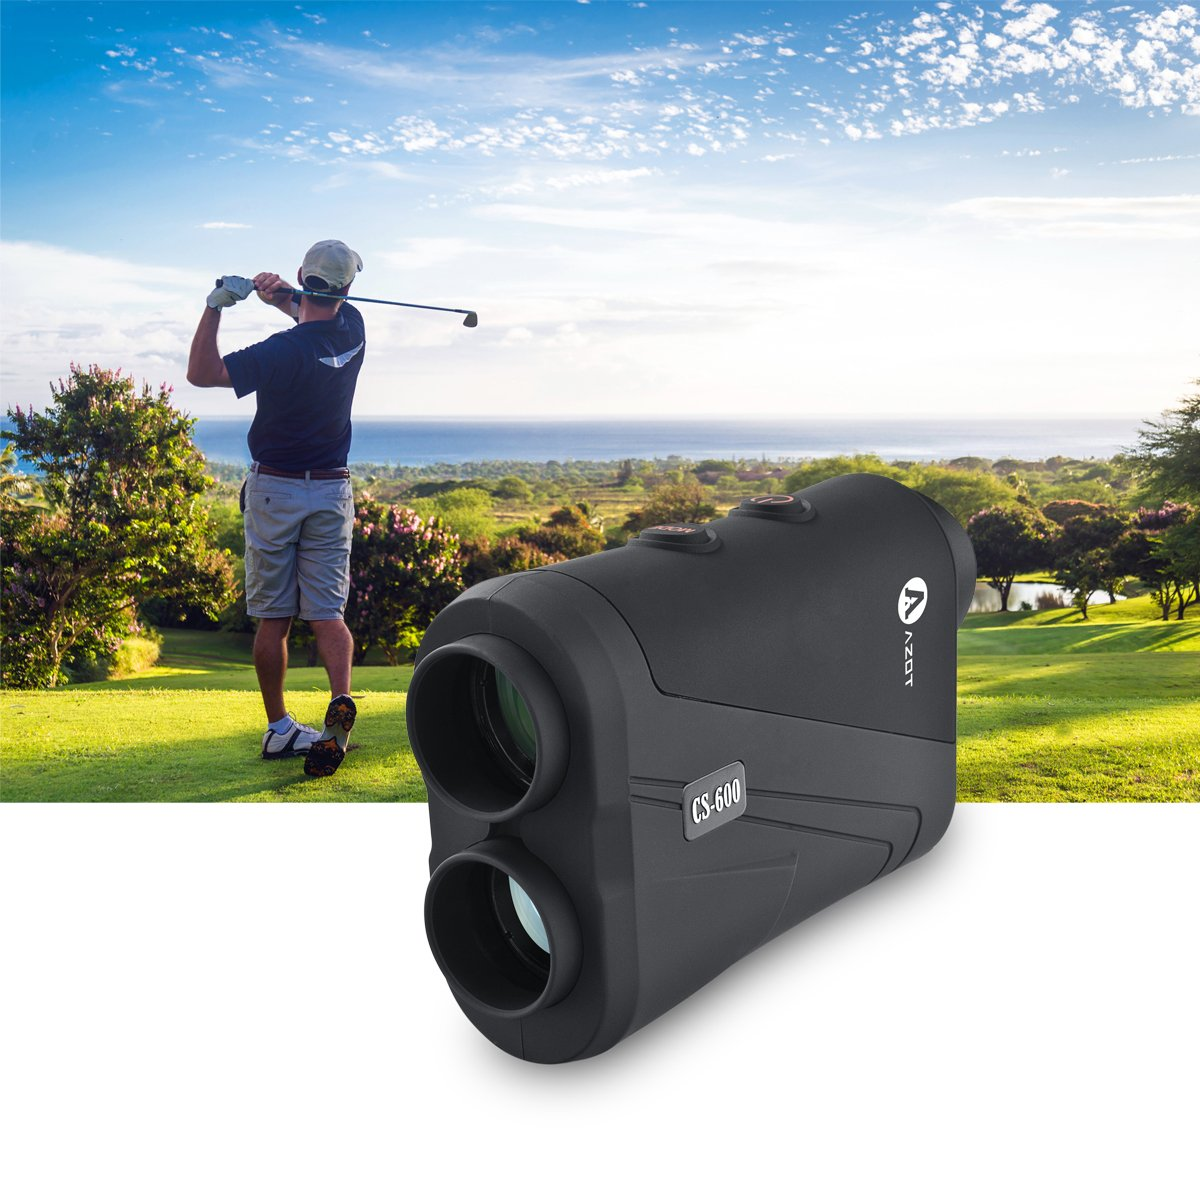 AZOT CS-600 Golf rangefinder Laser Range Finder with waterproof function Measure ranging and speed Free Battery by AZOT (Image #6)